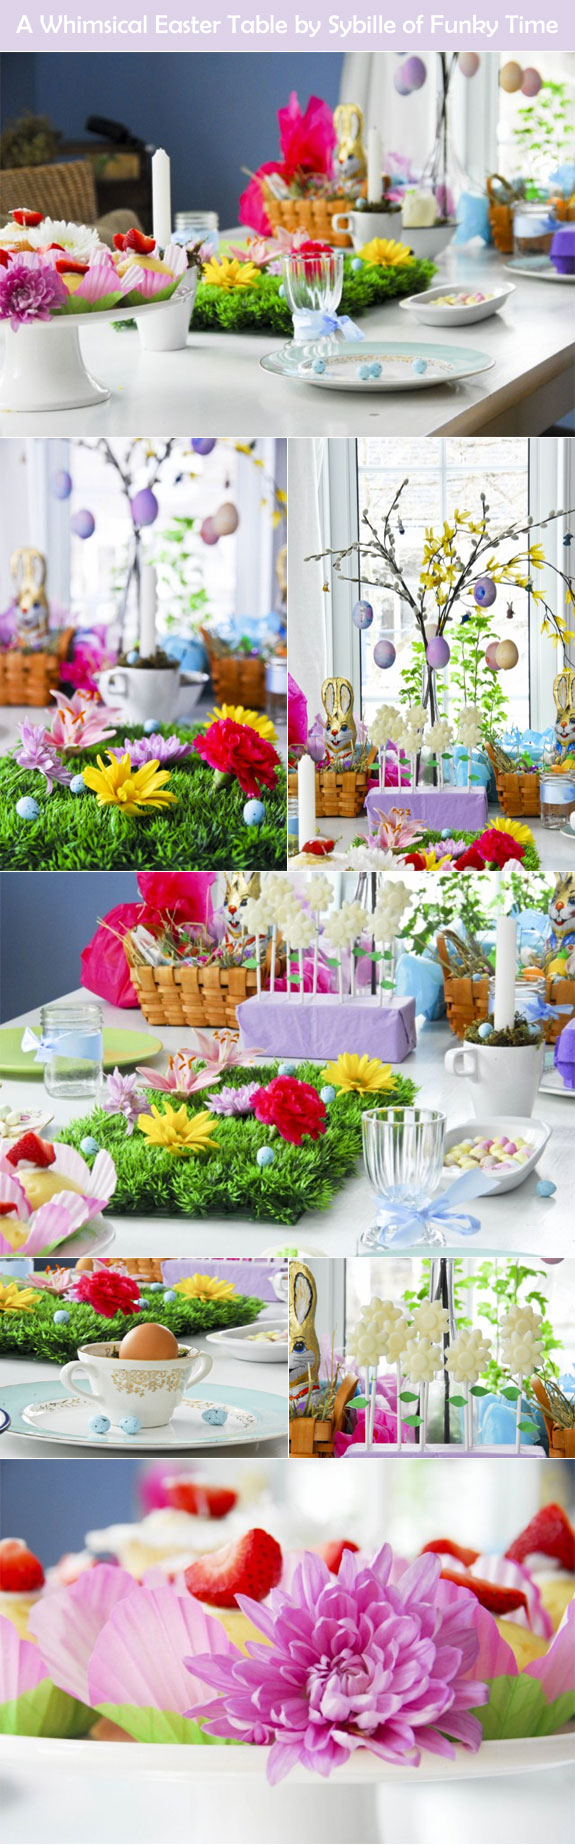 Whimsical Easter Table Decorations